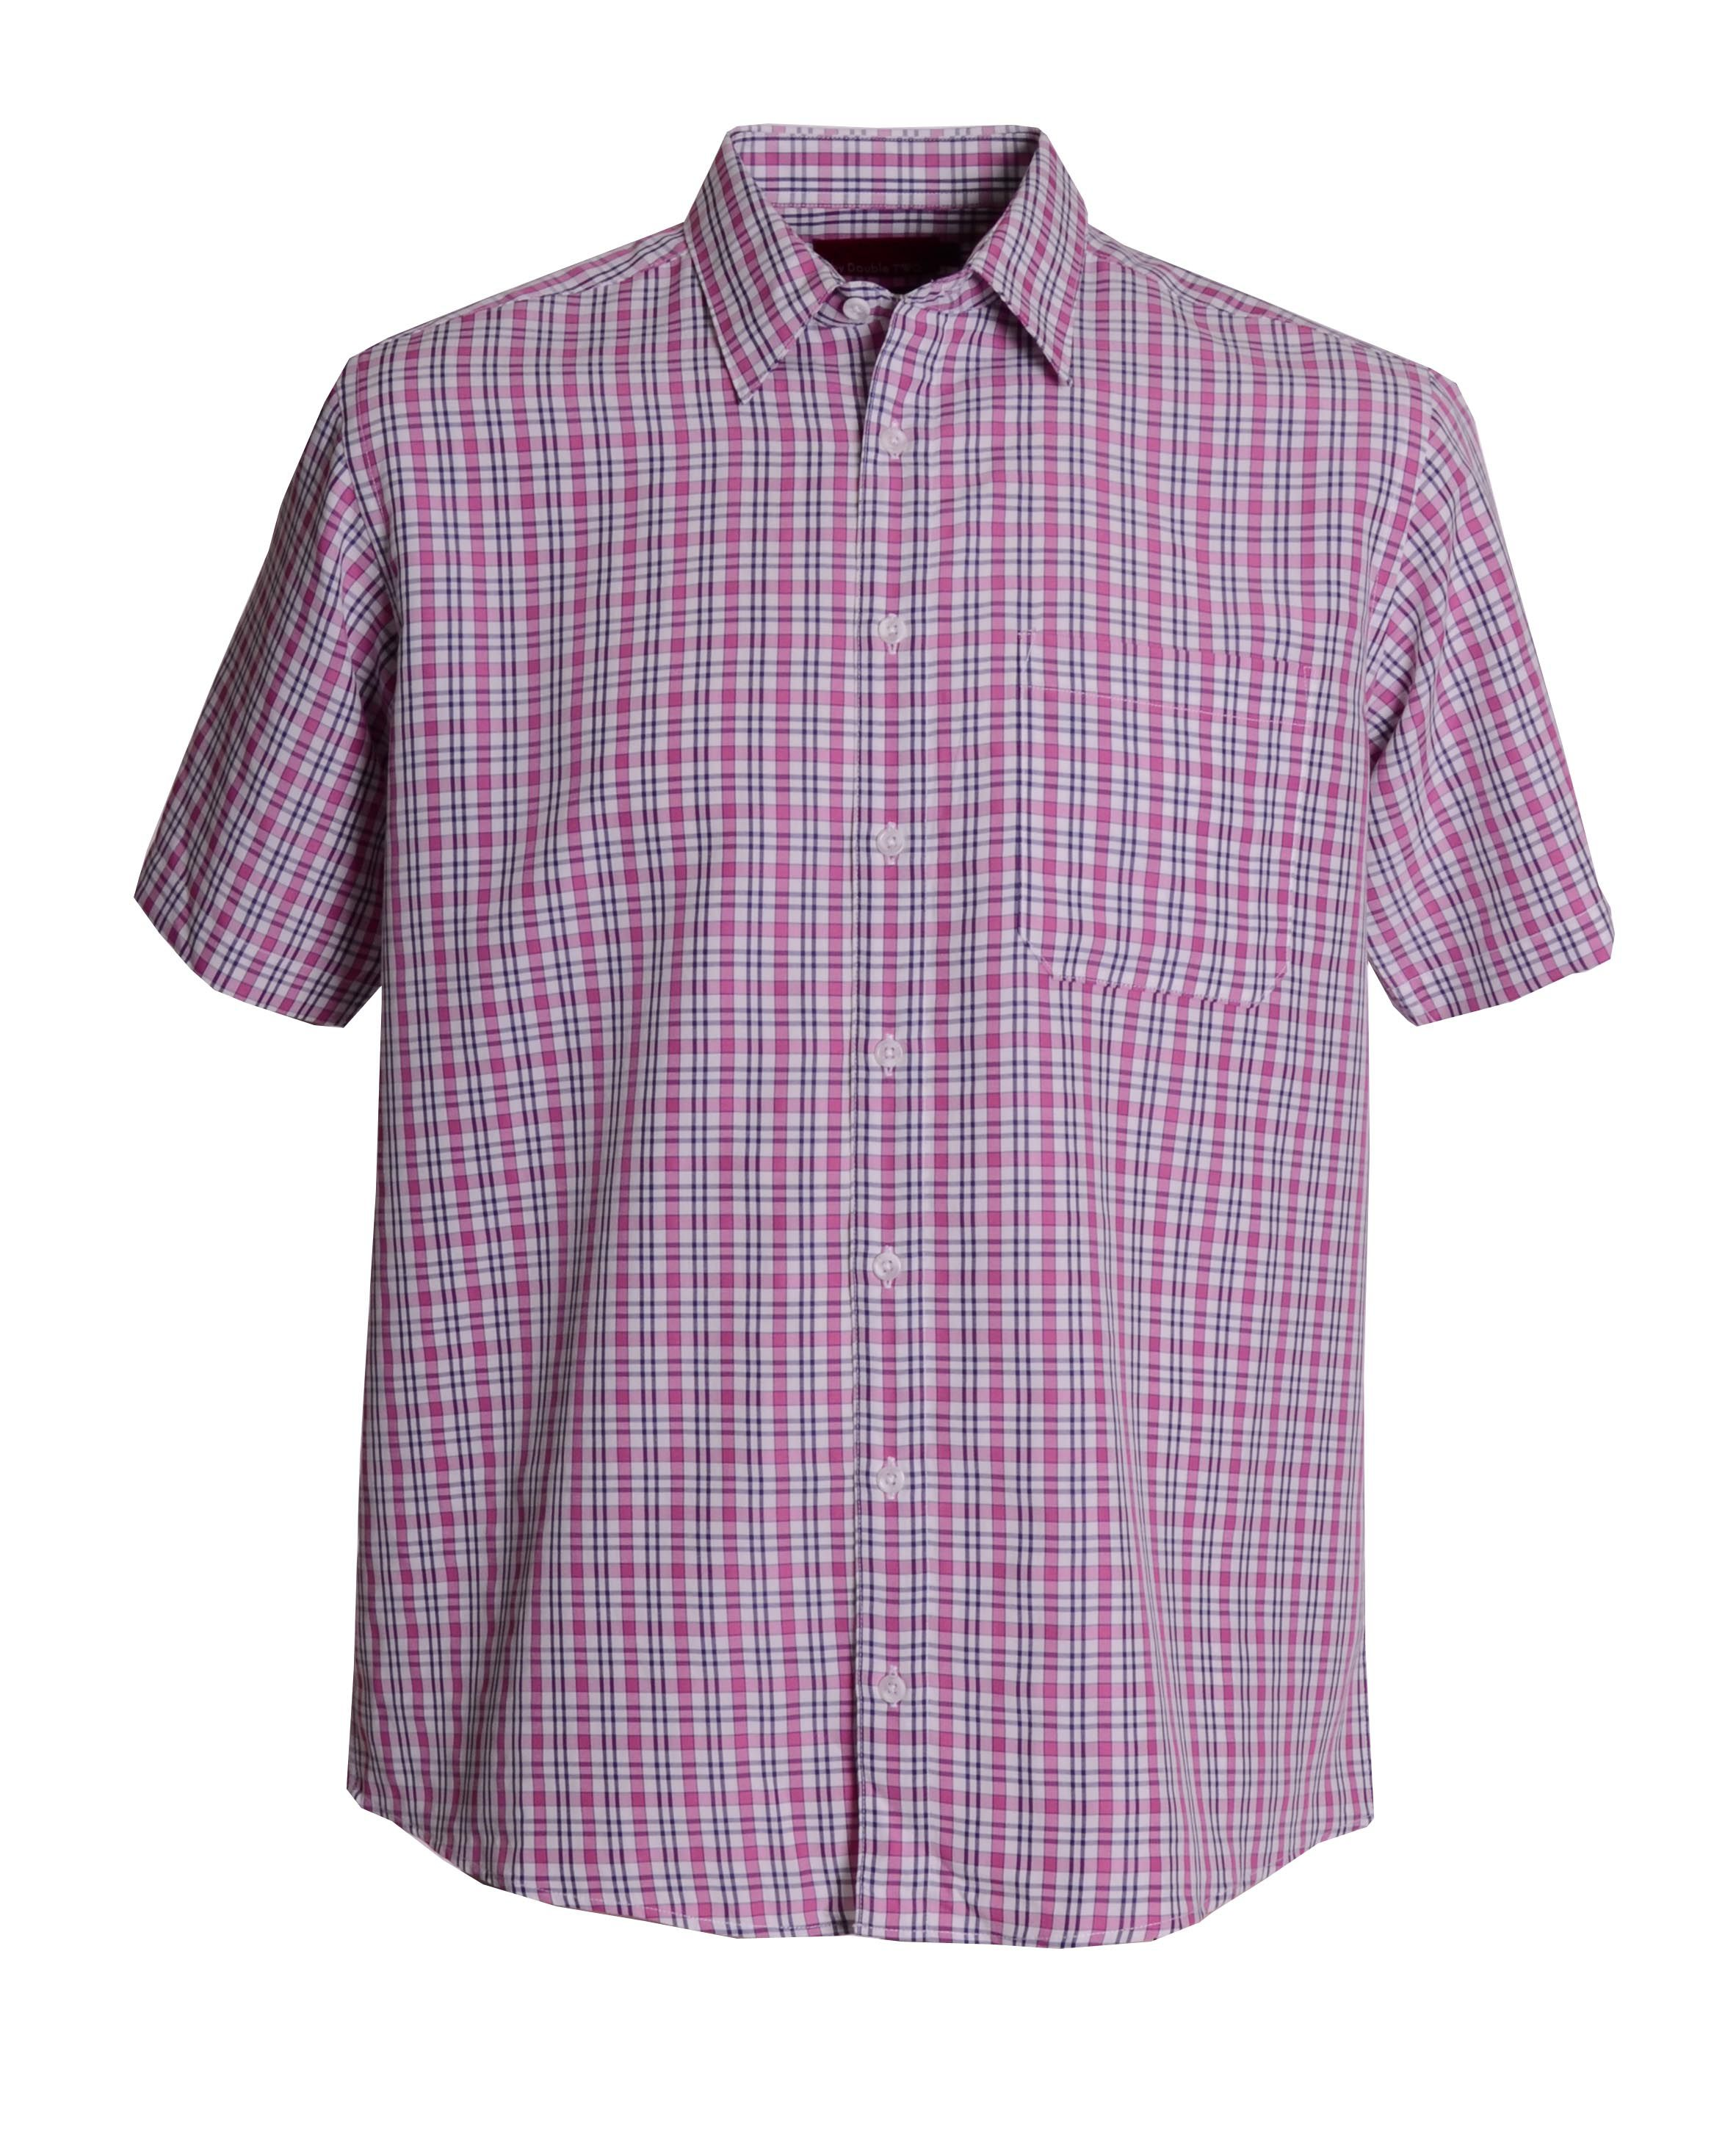 Modal check long sleeve shirt